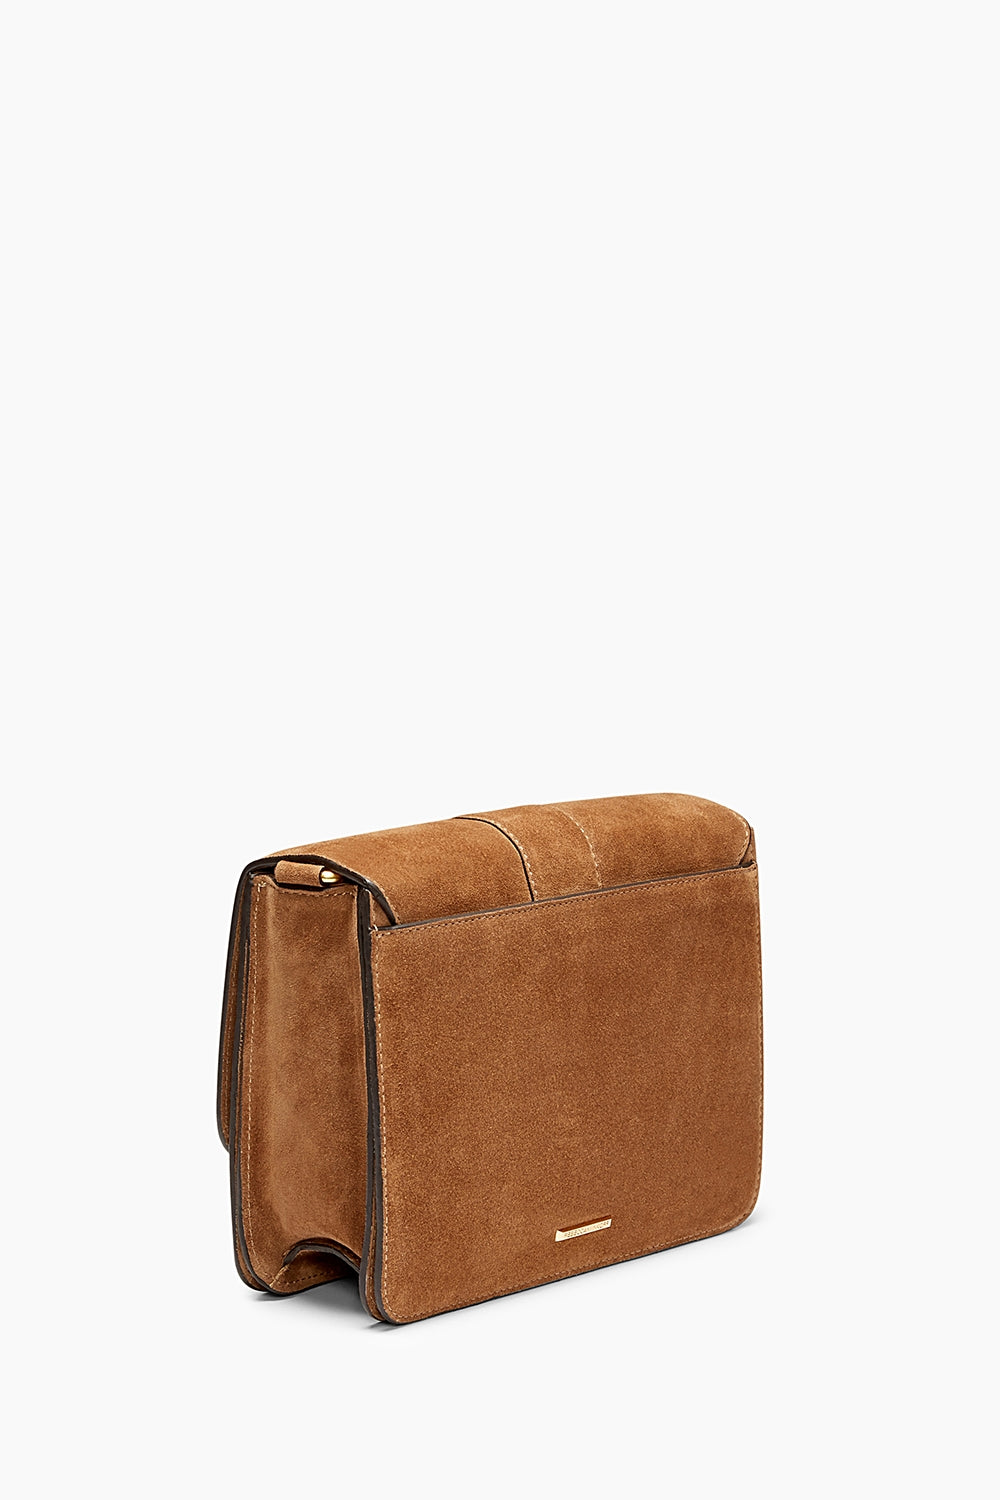 Hook Up Shoulder Bag